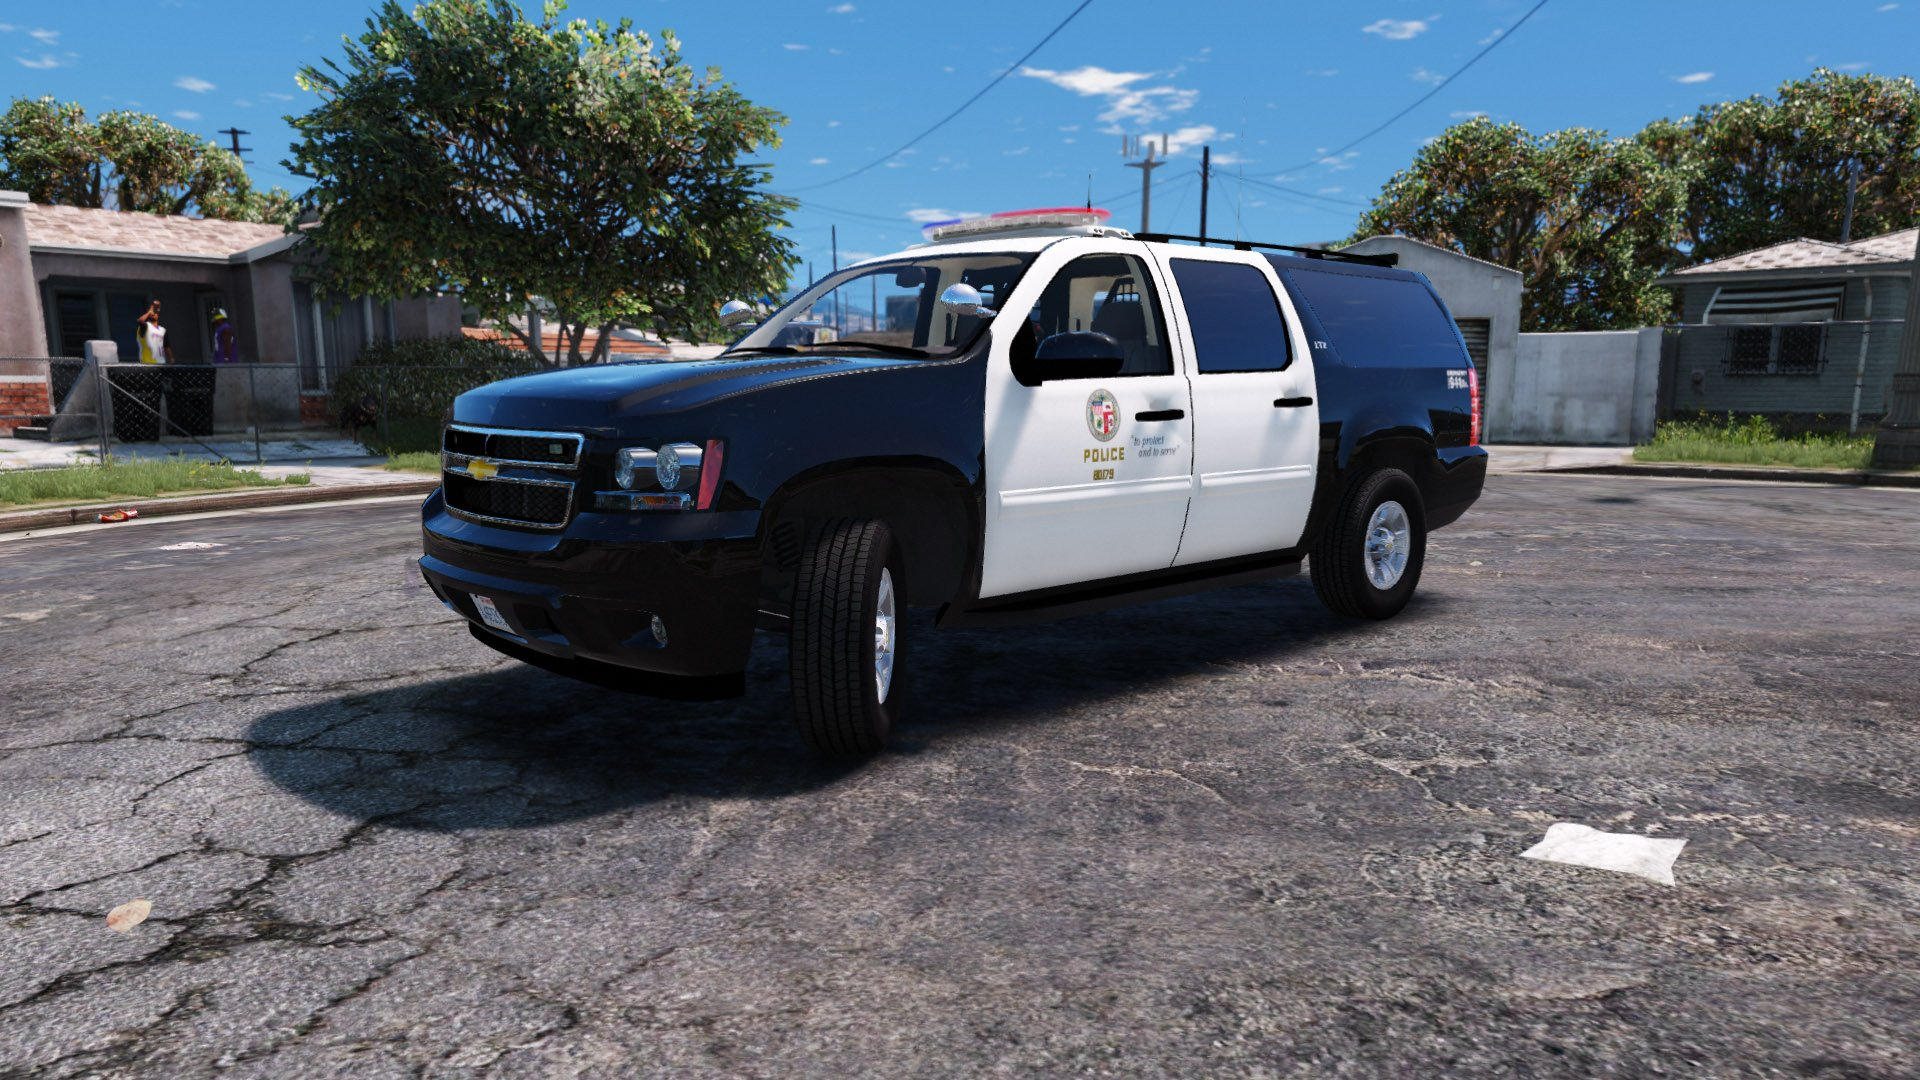 lapd skin for 2008 chevrolet suburban gta5. Black Bedroom Furniture Sets. Home Design Ideas